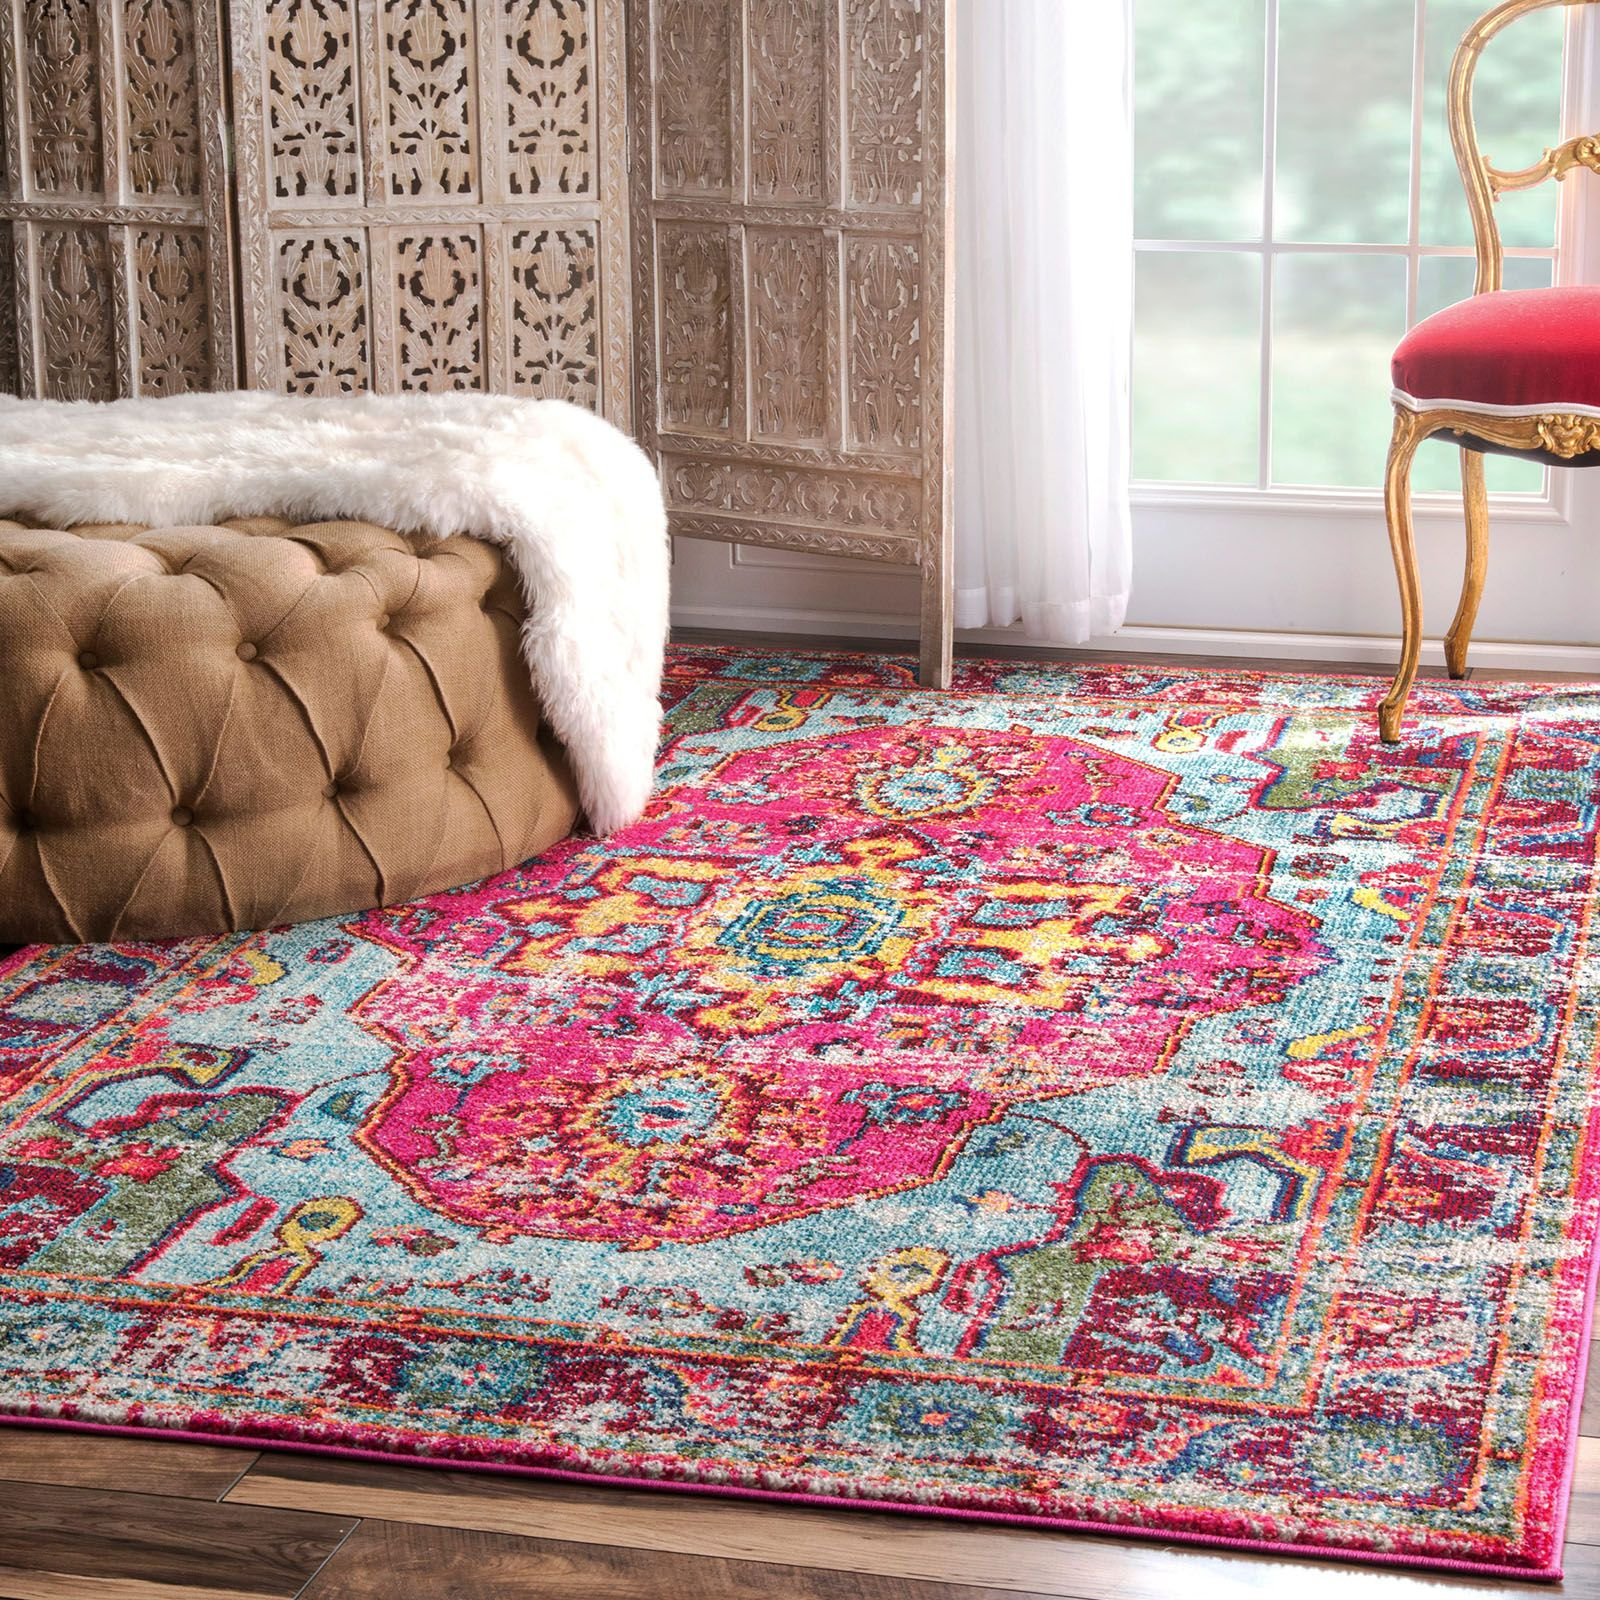 Pin By Hayneedle On Shop The Look Cool Rugs Contemporary Area